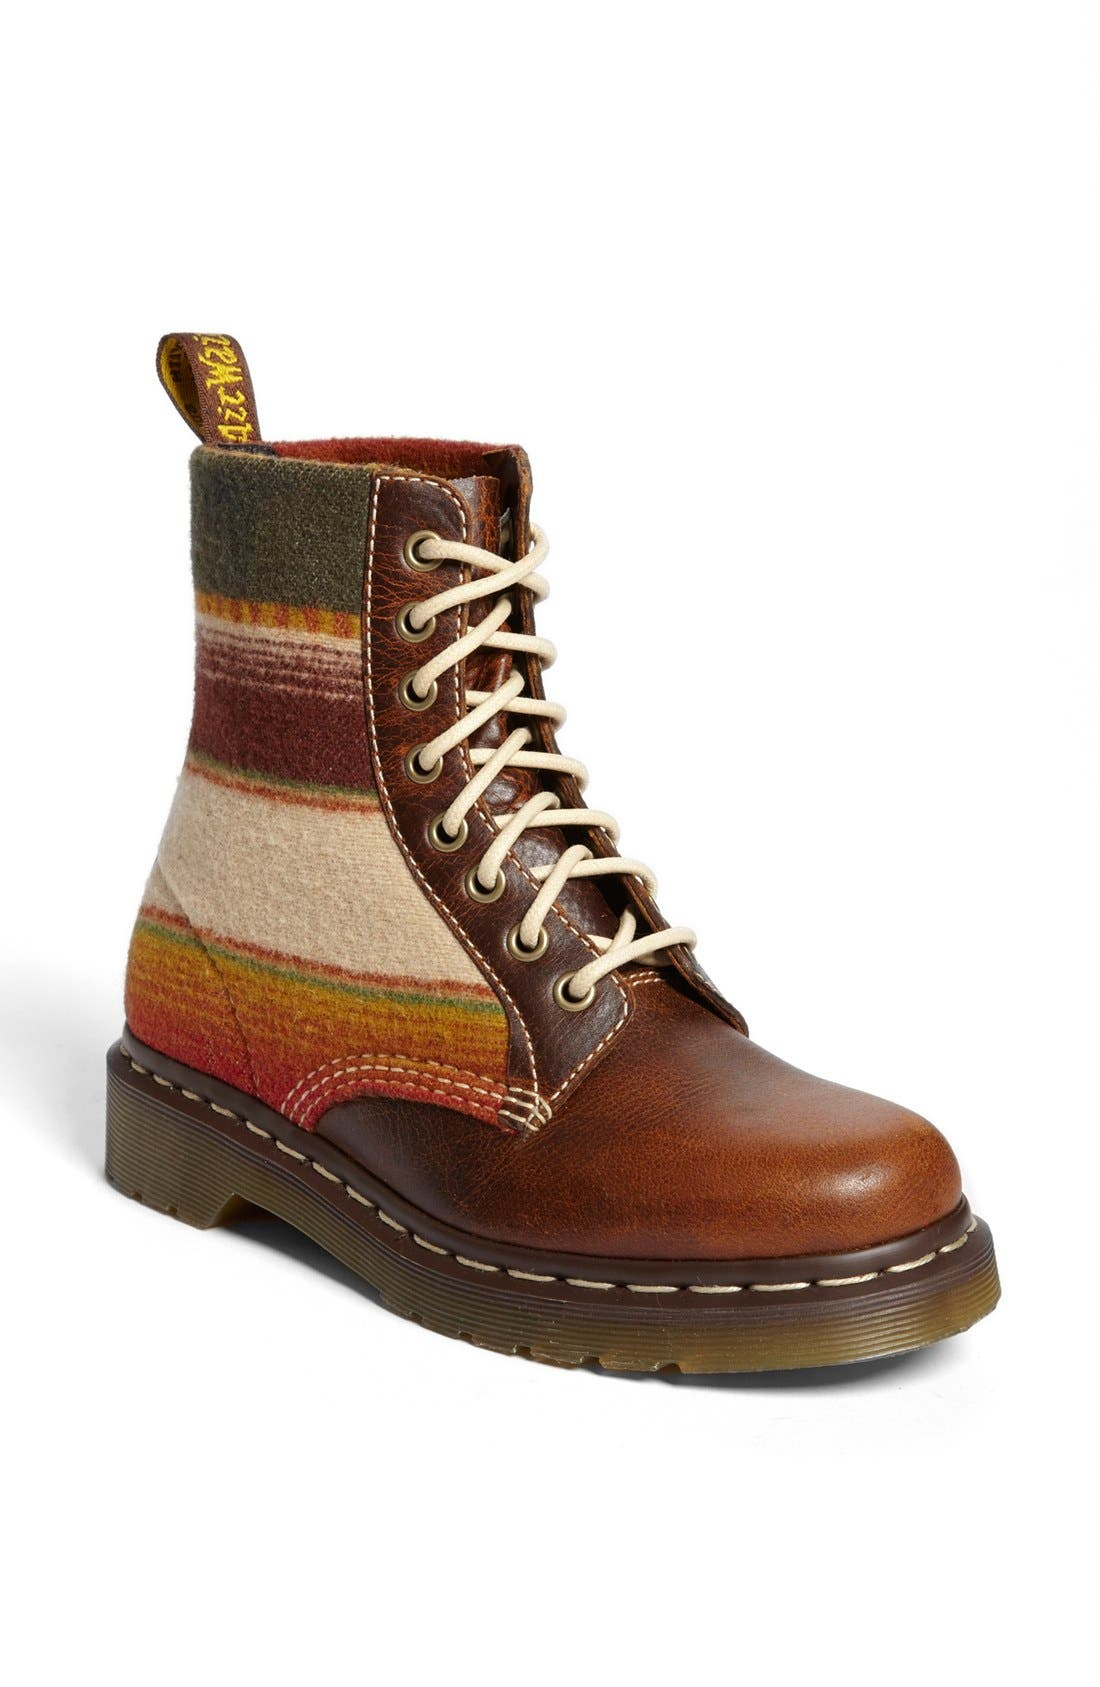 Main Image - Pendleton for Dr. Martens Boot